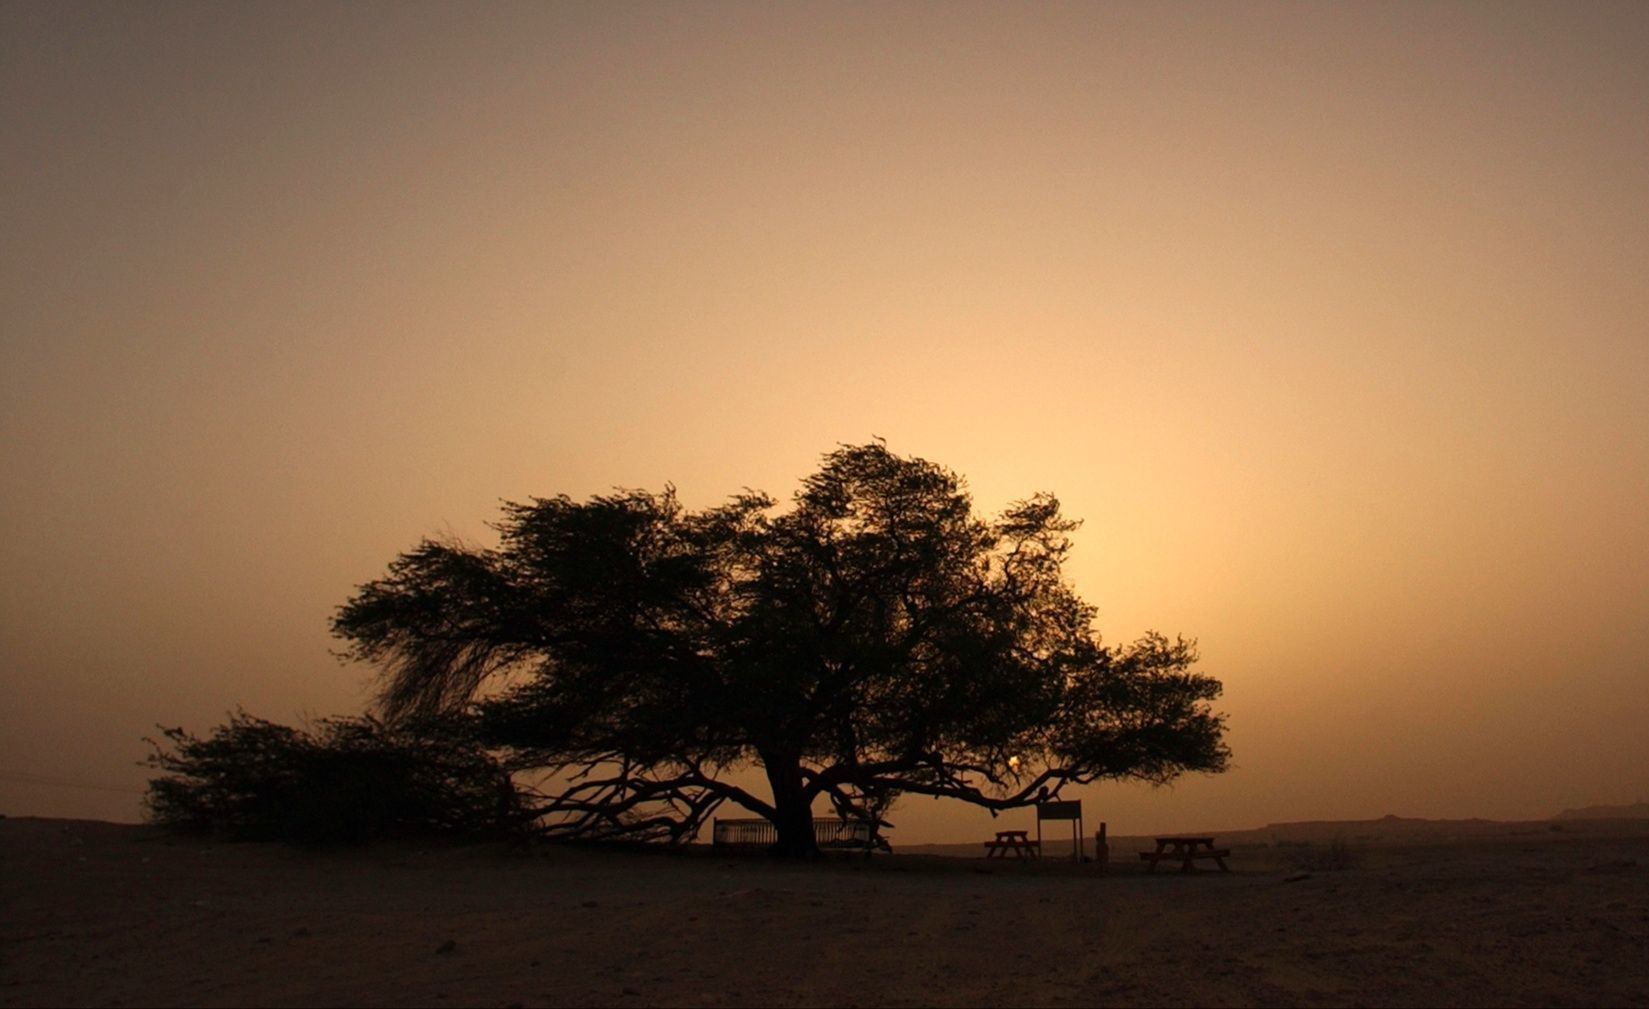 Mysterious Tree of Life in Bahrain